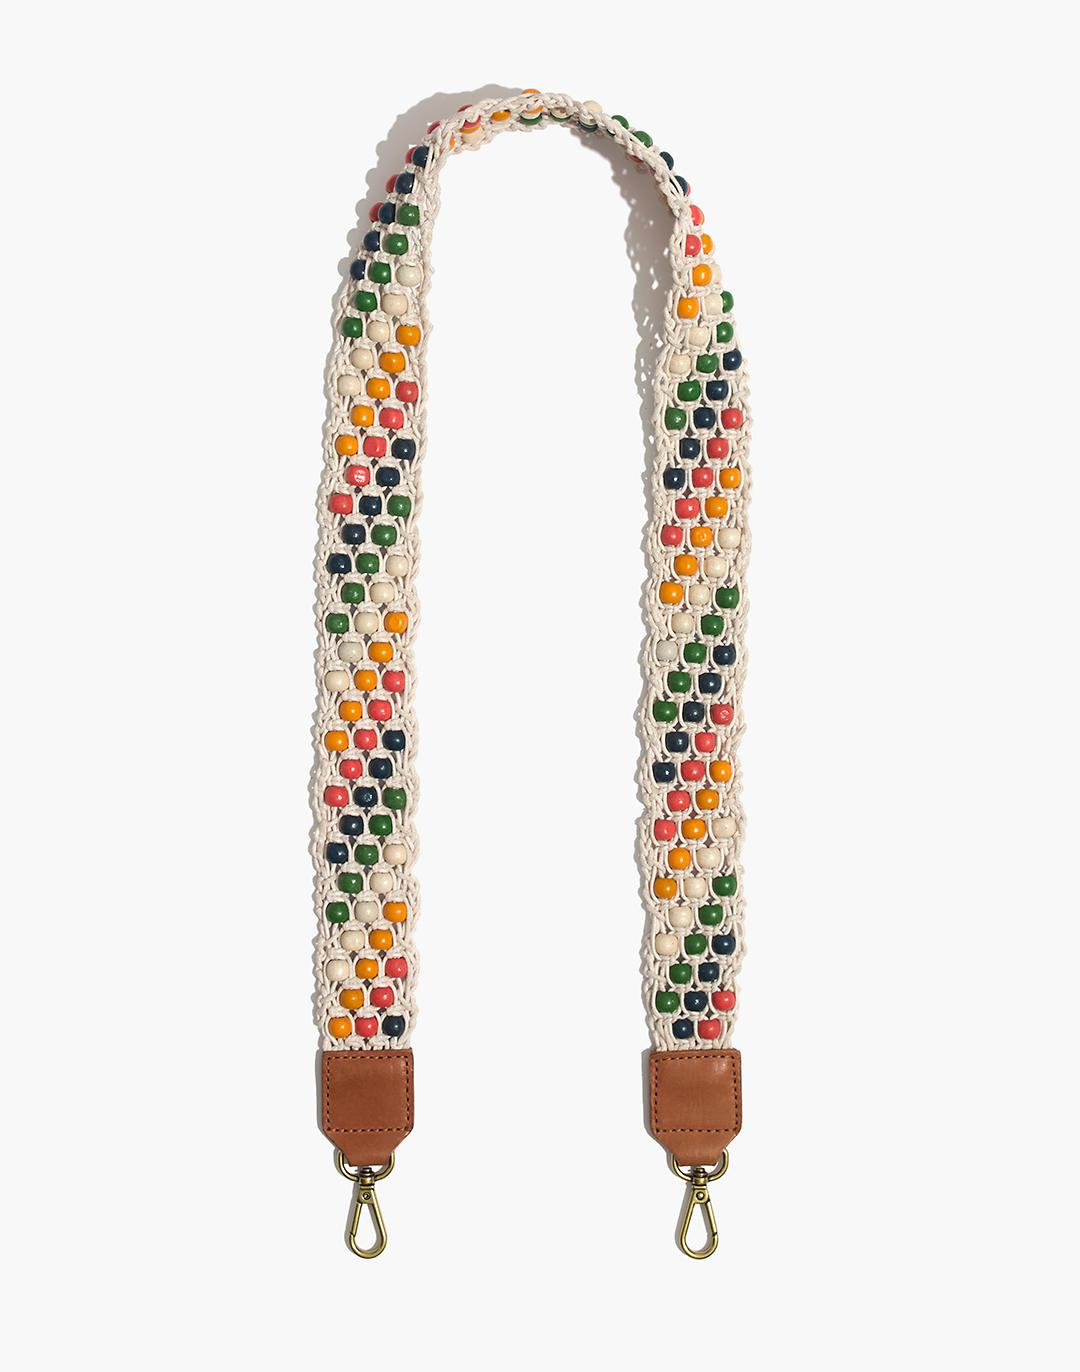 The Shoulder Strap: Beaded Edition